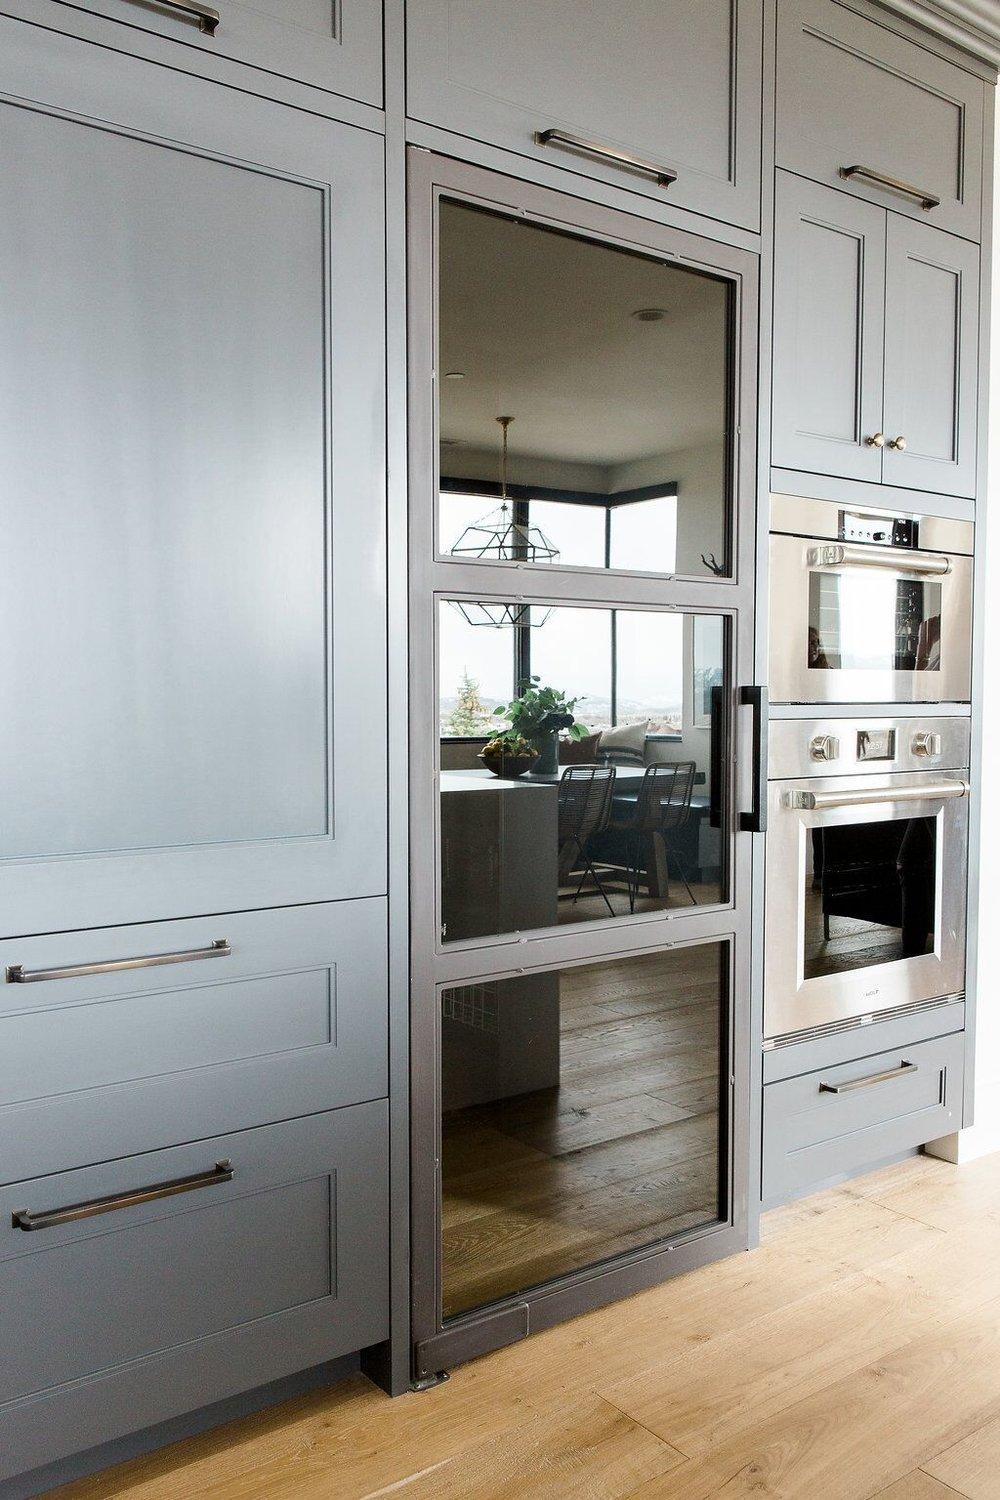 Blue kitchen cabinets in Benjamin Moore's Cheating Heart